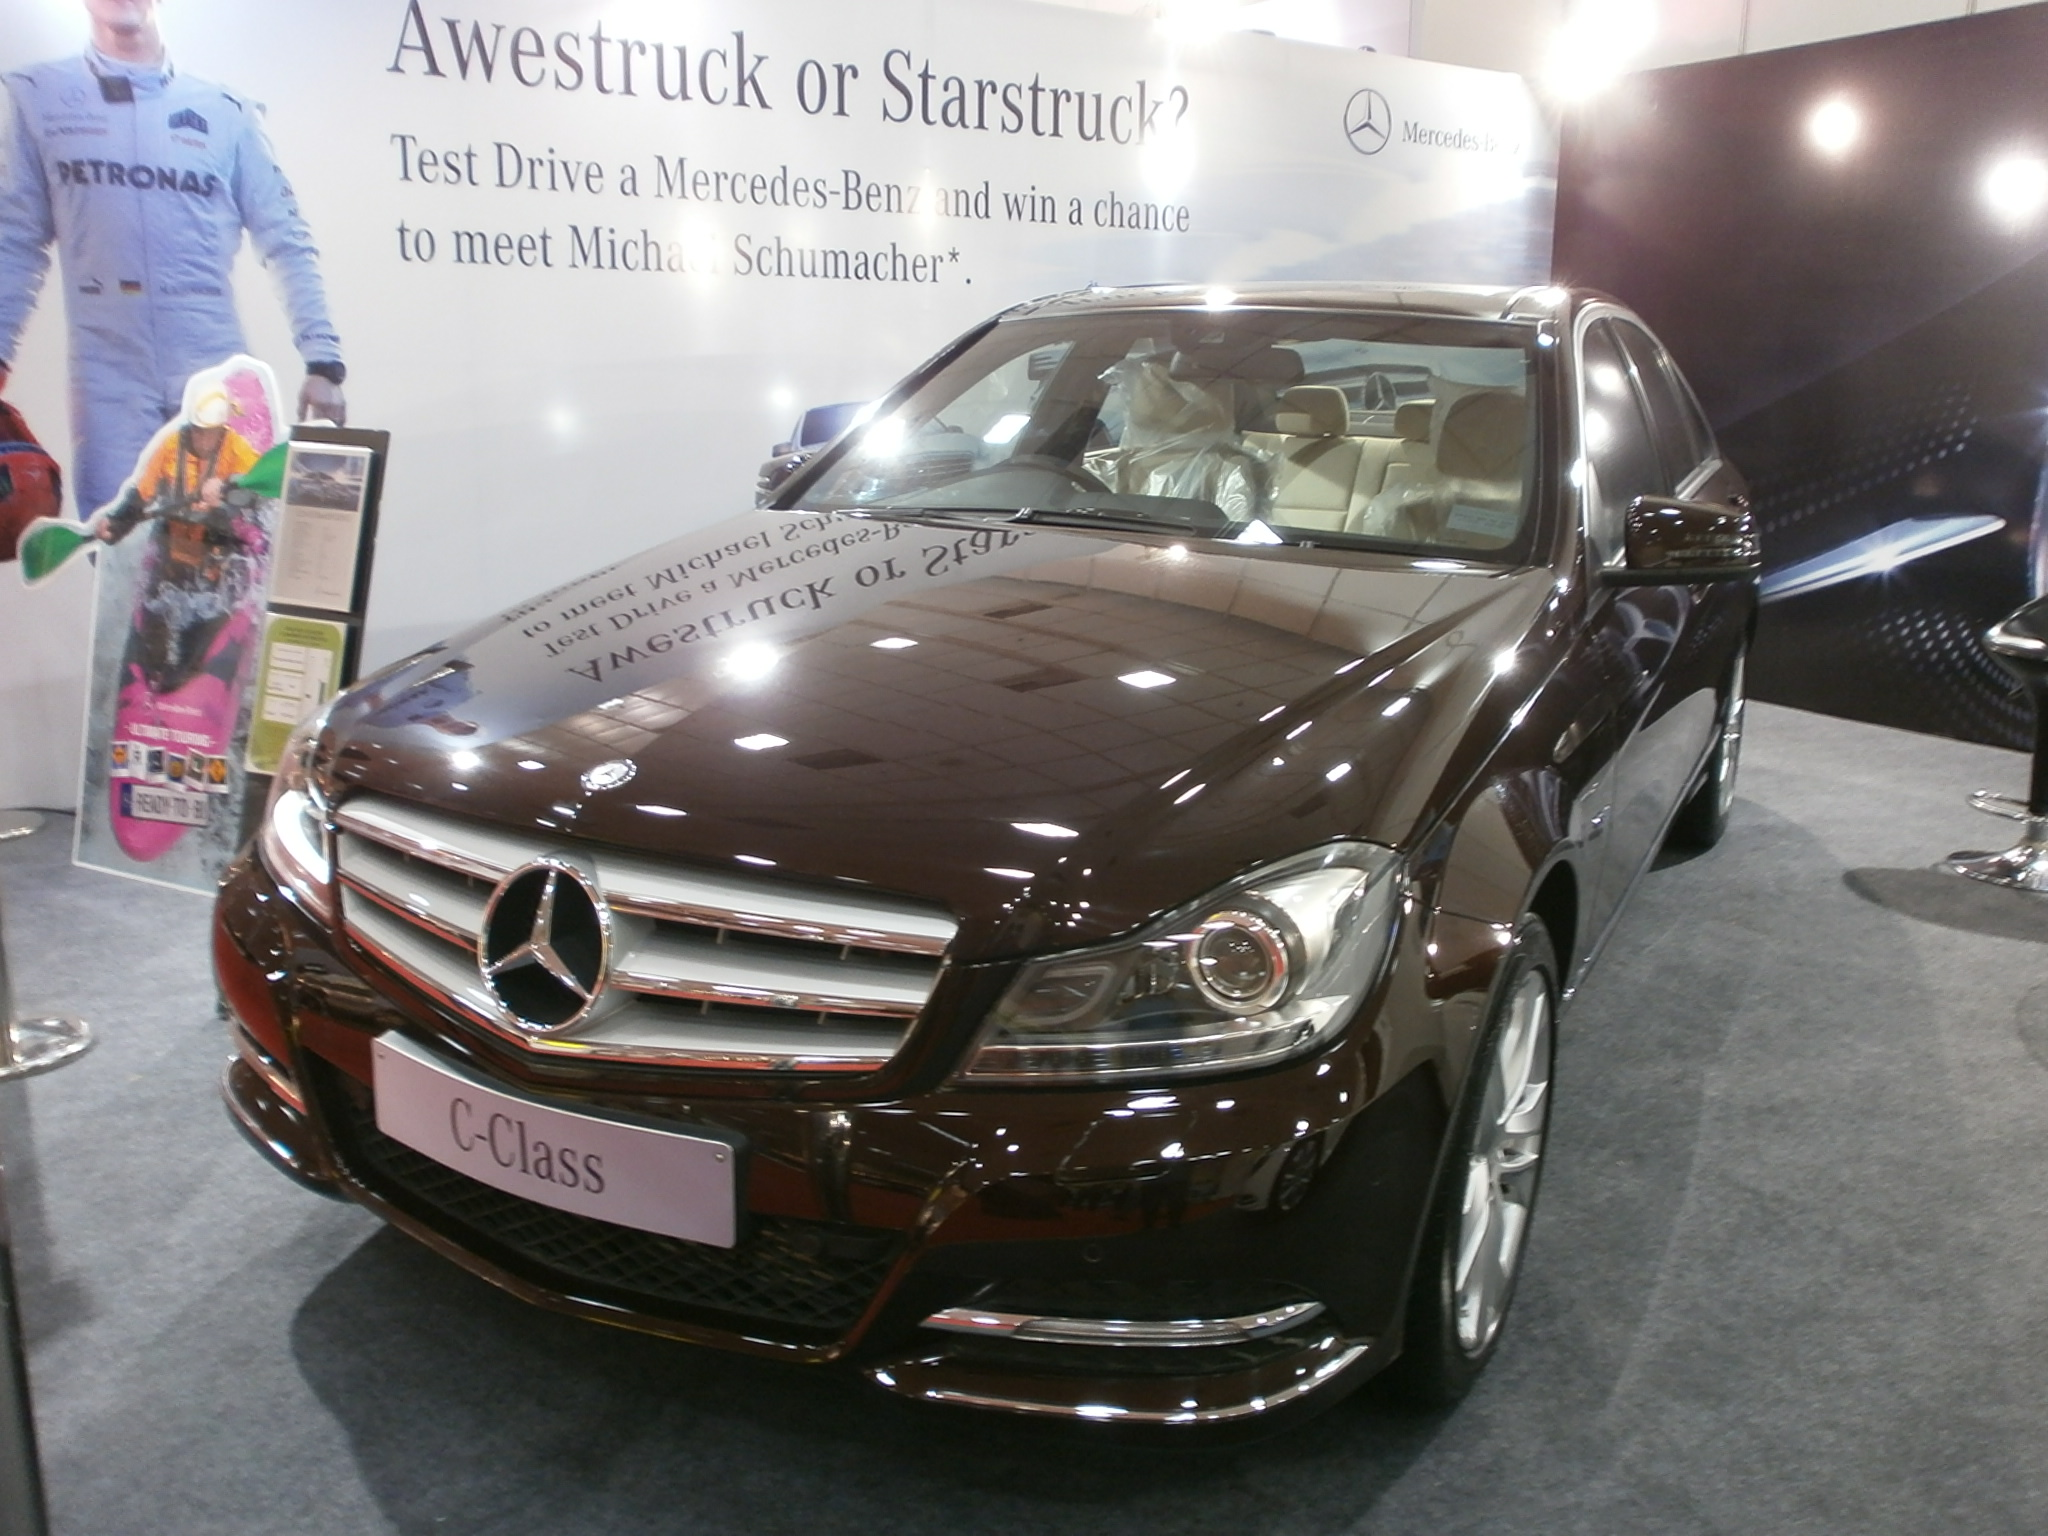 File:Mercedes-C-Class-Chocolate-Color-Car.JPG - Wikimedia